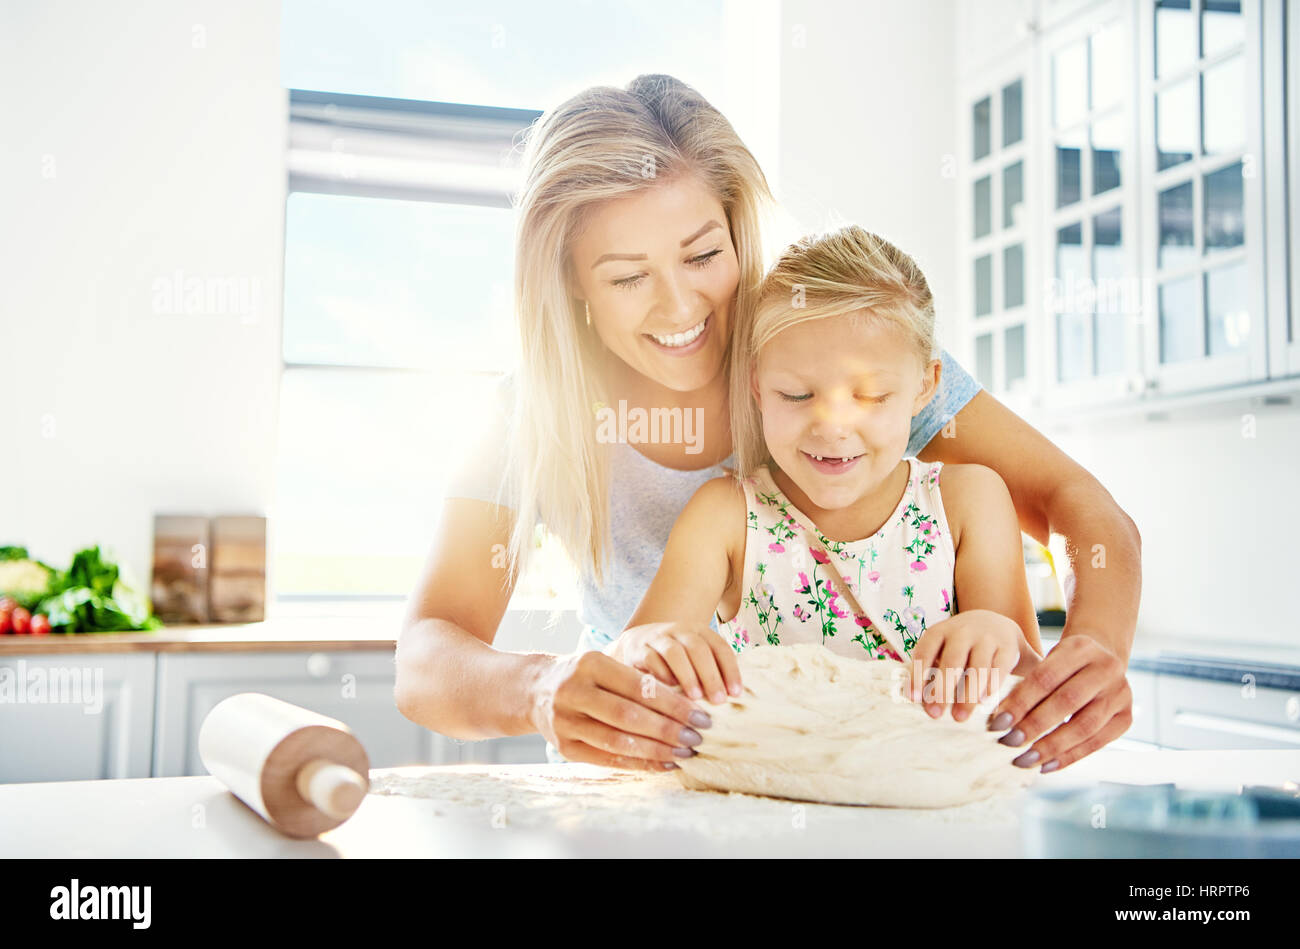 Pretty little girl kneading dough with her mother laughing with joy as she learns to bake, close up view with bright Stock Photo